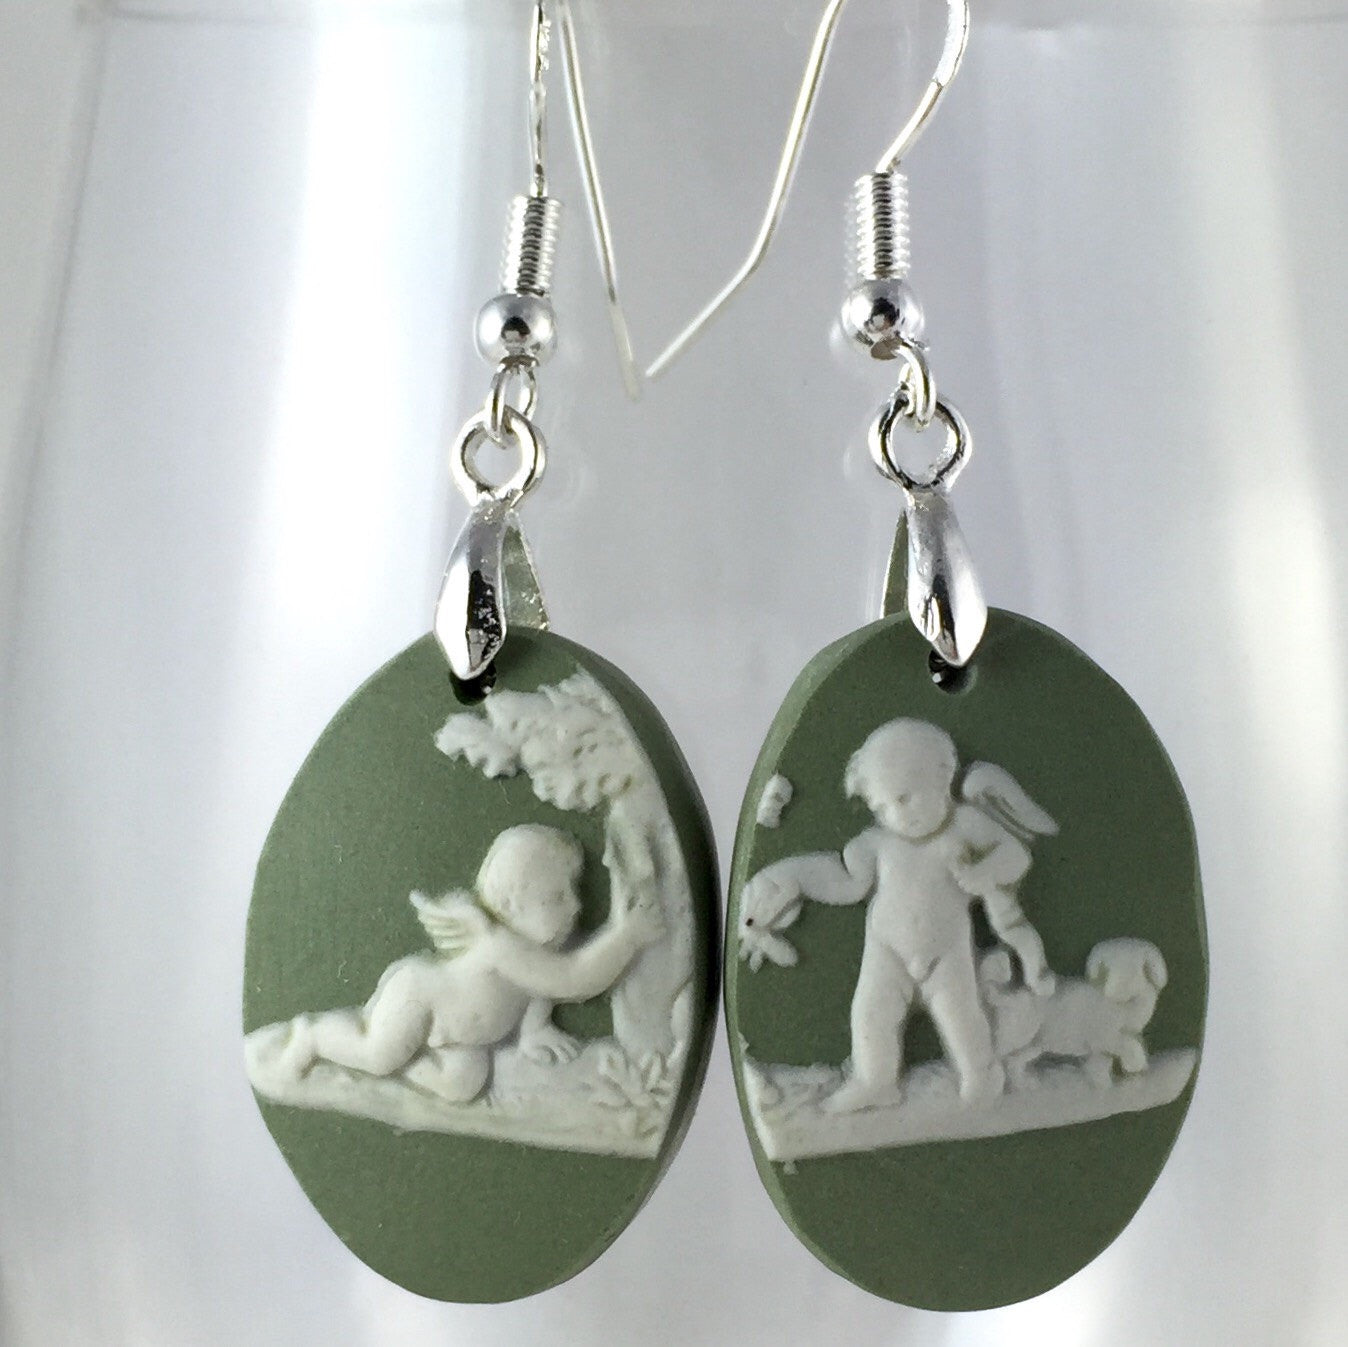 Broken China jewelry earrings  - handmade gift ideas